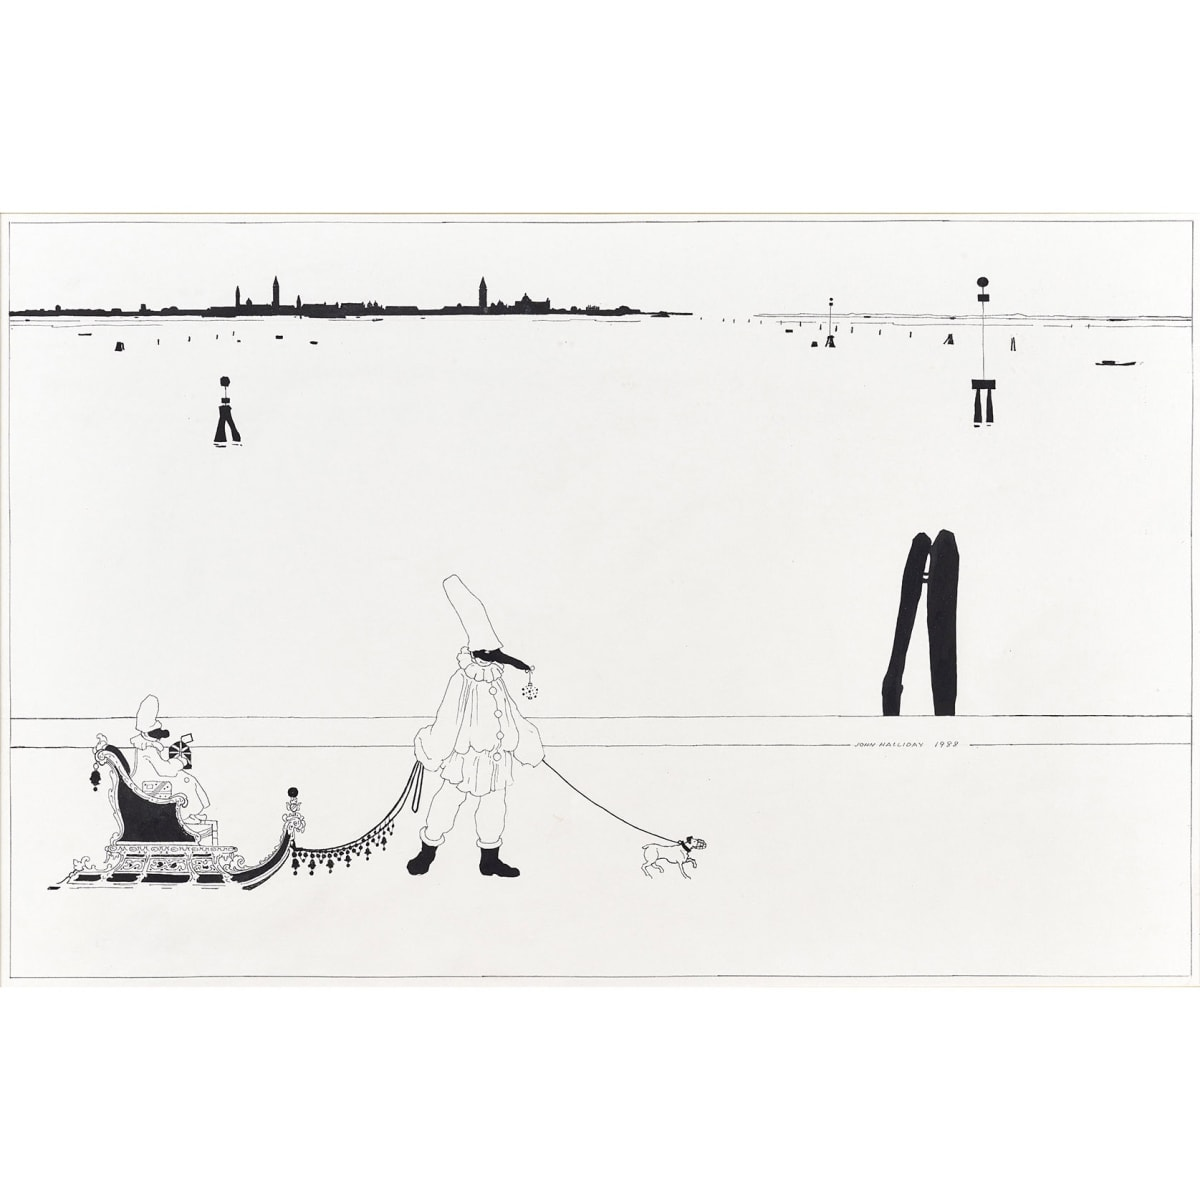 John Halliday Venetian Card, 1988 signed and dated 1988 pen and ink 17 1/4 x 27 1/4 inches